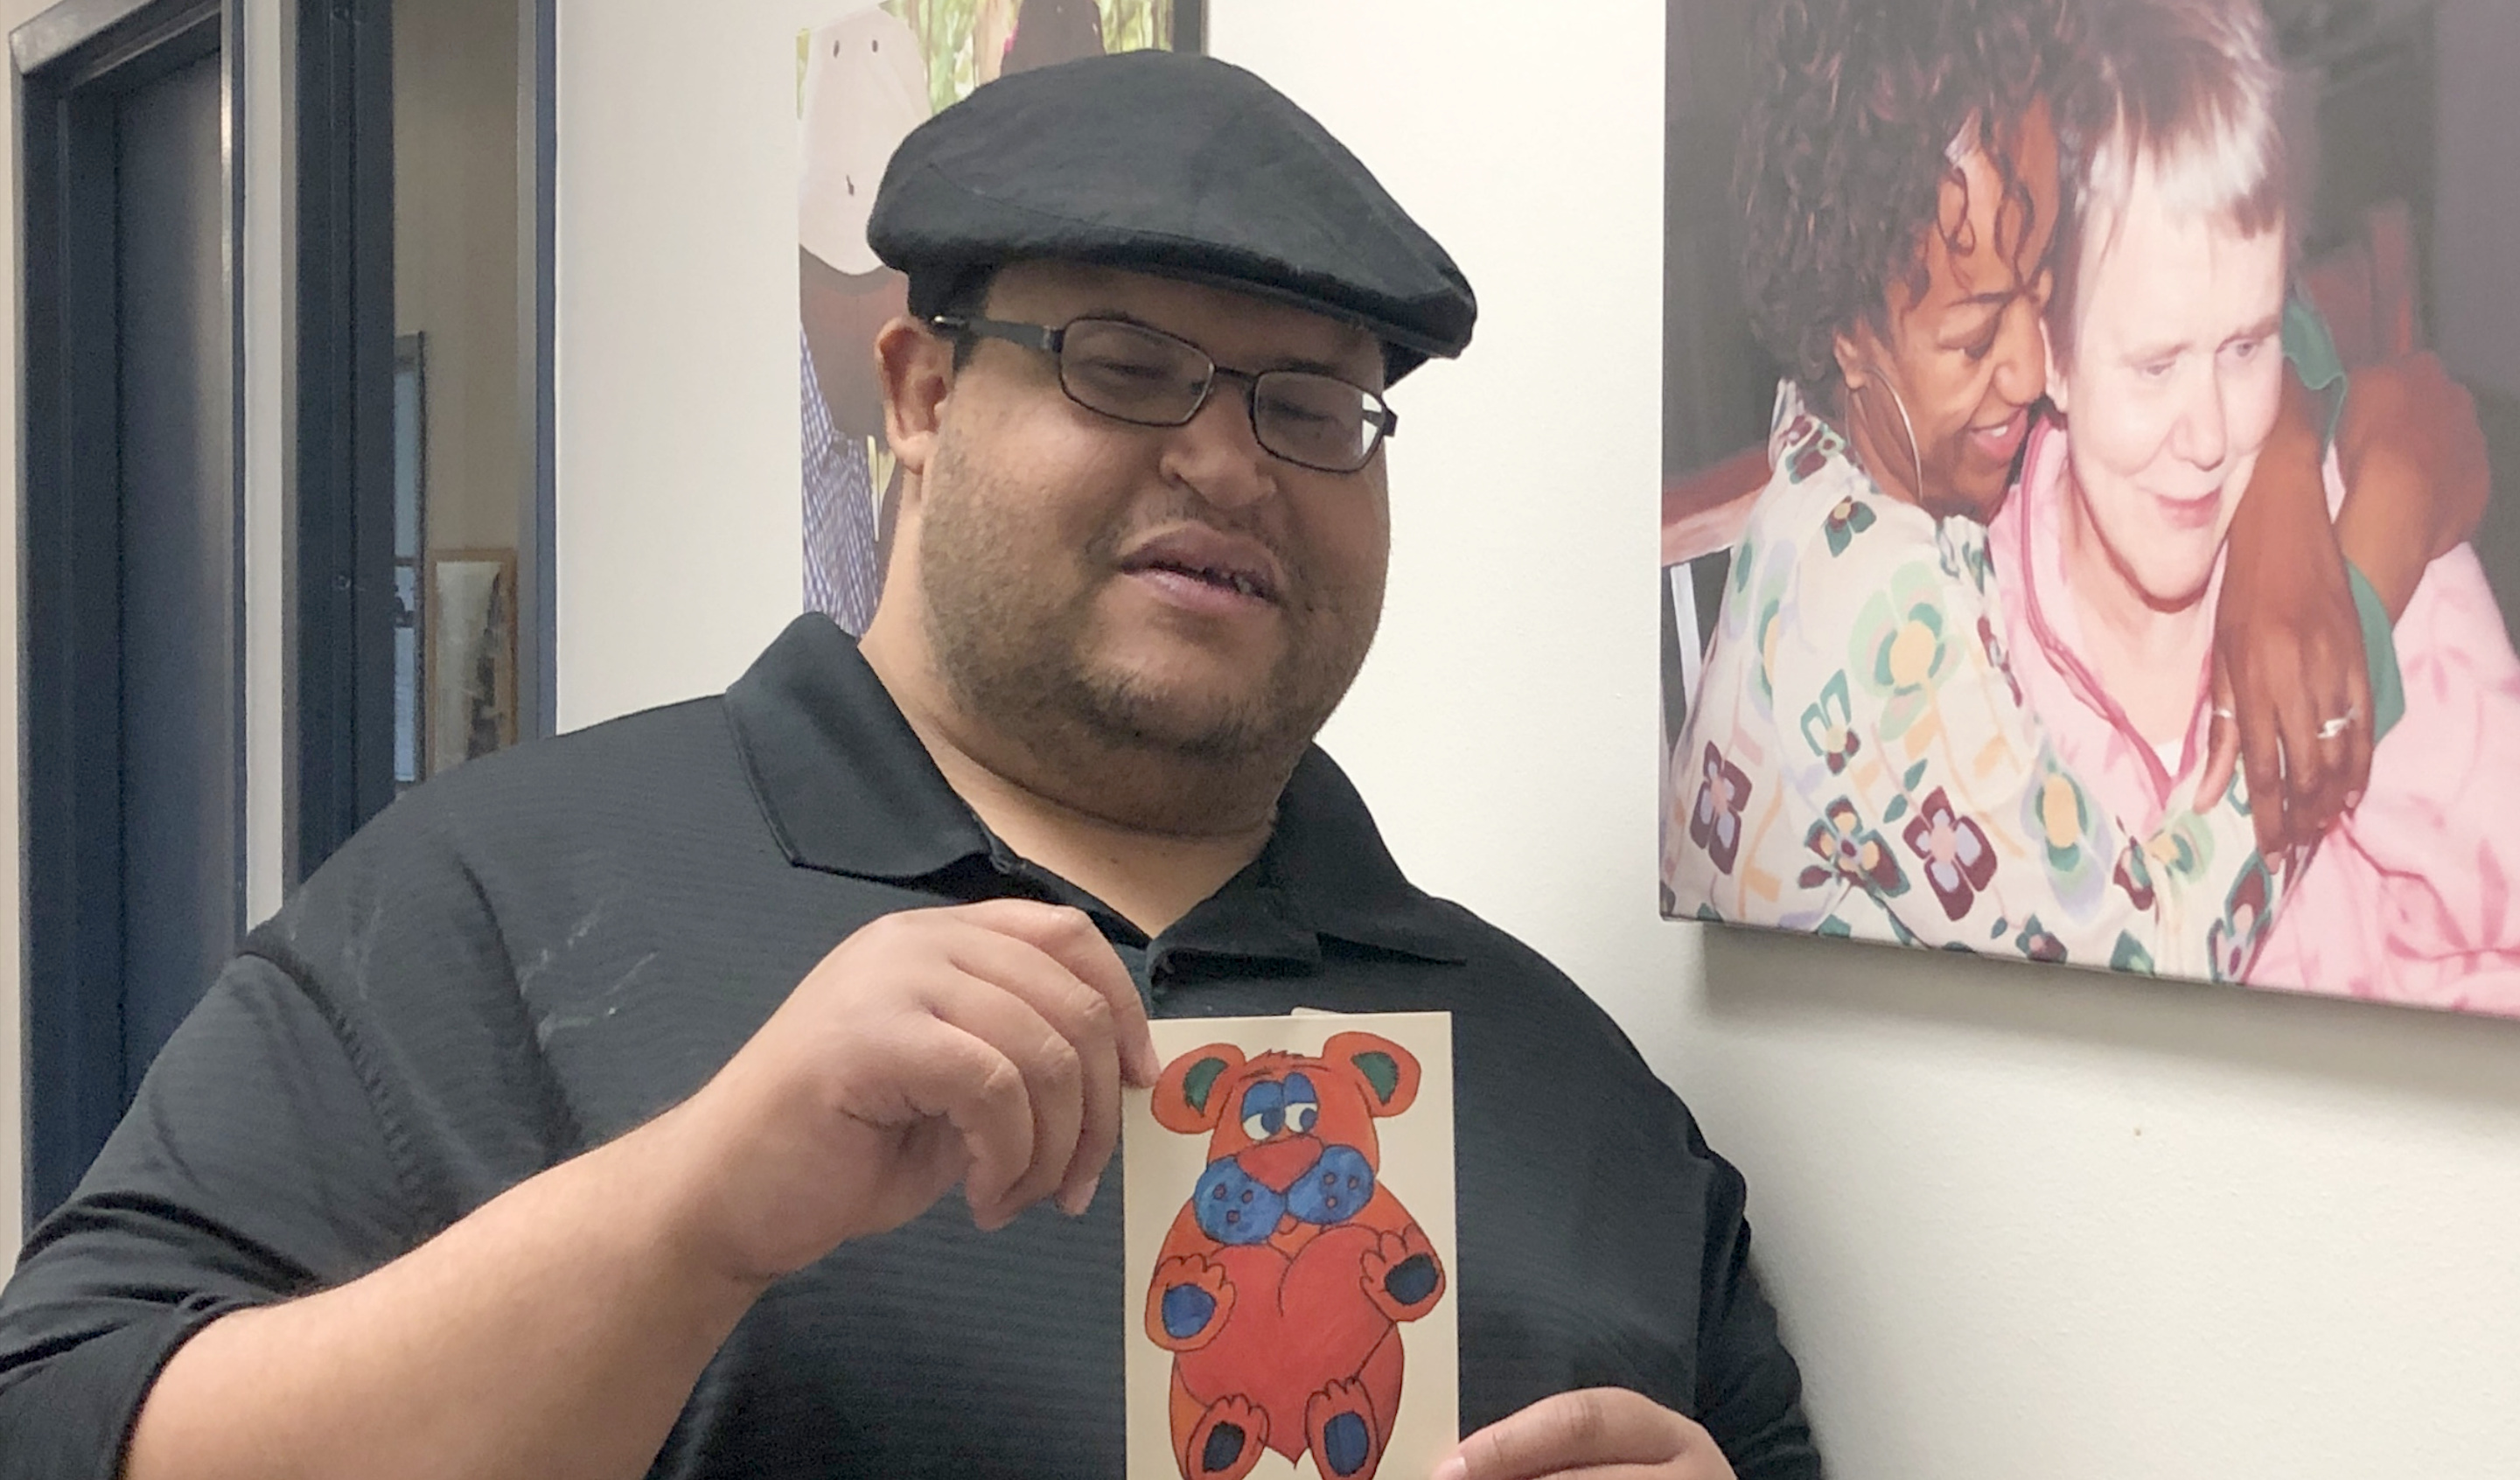 a client holding his artwork at the gallery. it's a small orange and blue bear